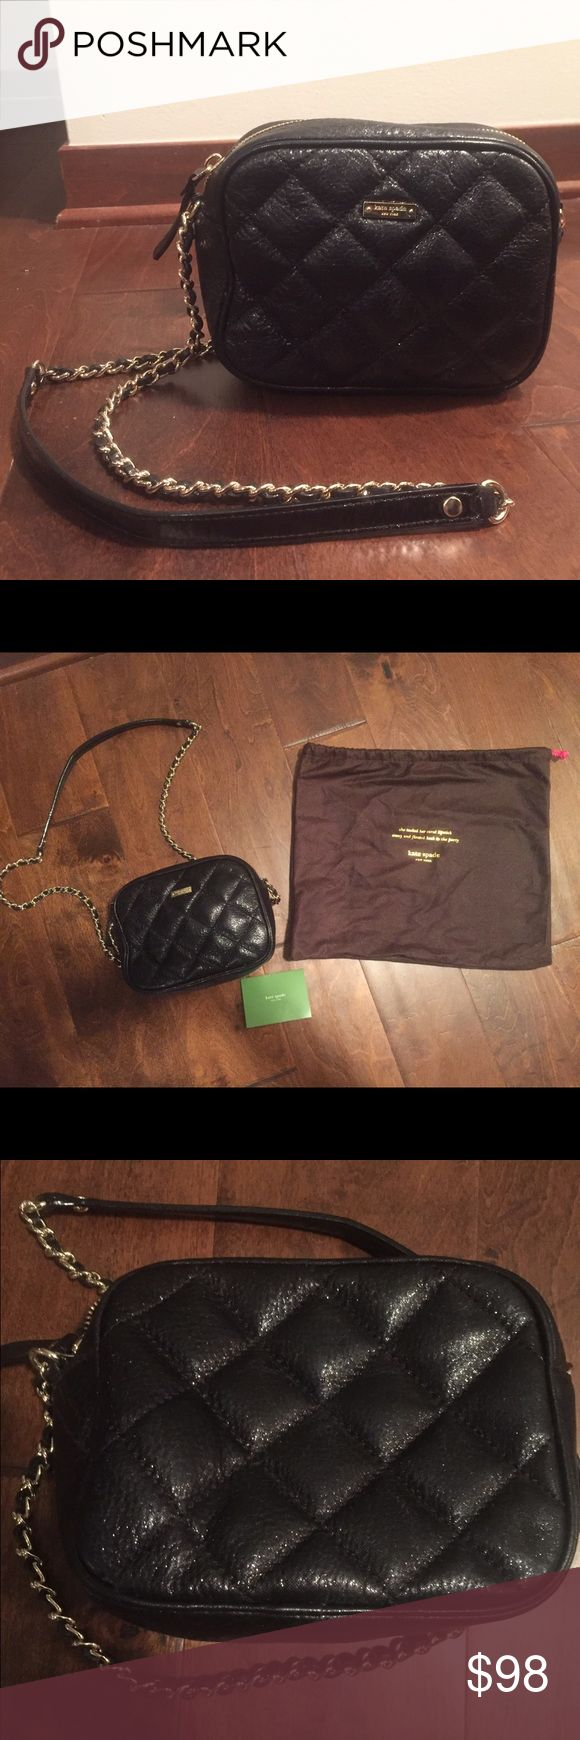 """Kate Spade Lauralee Gold Coast Crossbody Bag *NEW LOW PRICE (11/8 only) *Authentic Kate Spade purse, Excellent Condition, New w/o the tags on.  *Comes w/ original Kate Spade dust bag to store the purse in & original green care card   *Diamond quilting on crinkled leather  *Single strap w/ gold chain embellishment-- can be worn as a crossbody bag or off one shoulder-- 18"""" length  *14K Gold-tone detailed hardware with front logo plaque   *7 3/4 wide x 3 1/4 deep x 5 high. kate spade Bags…"""